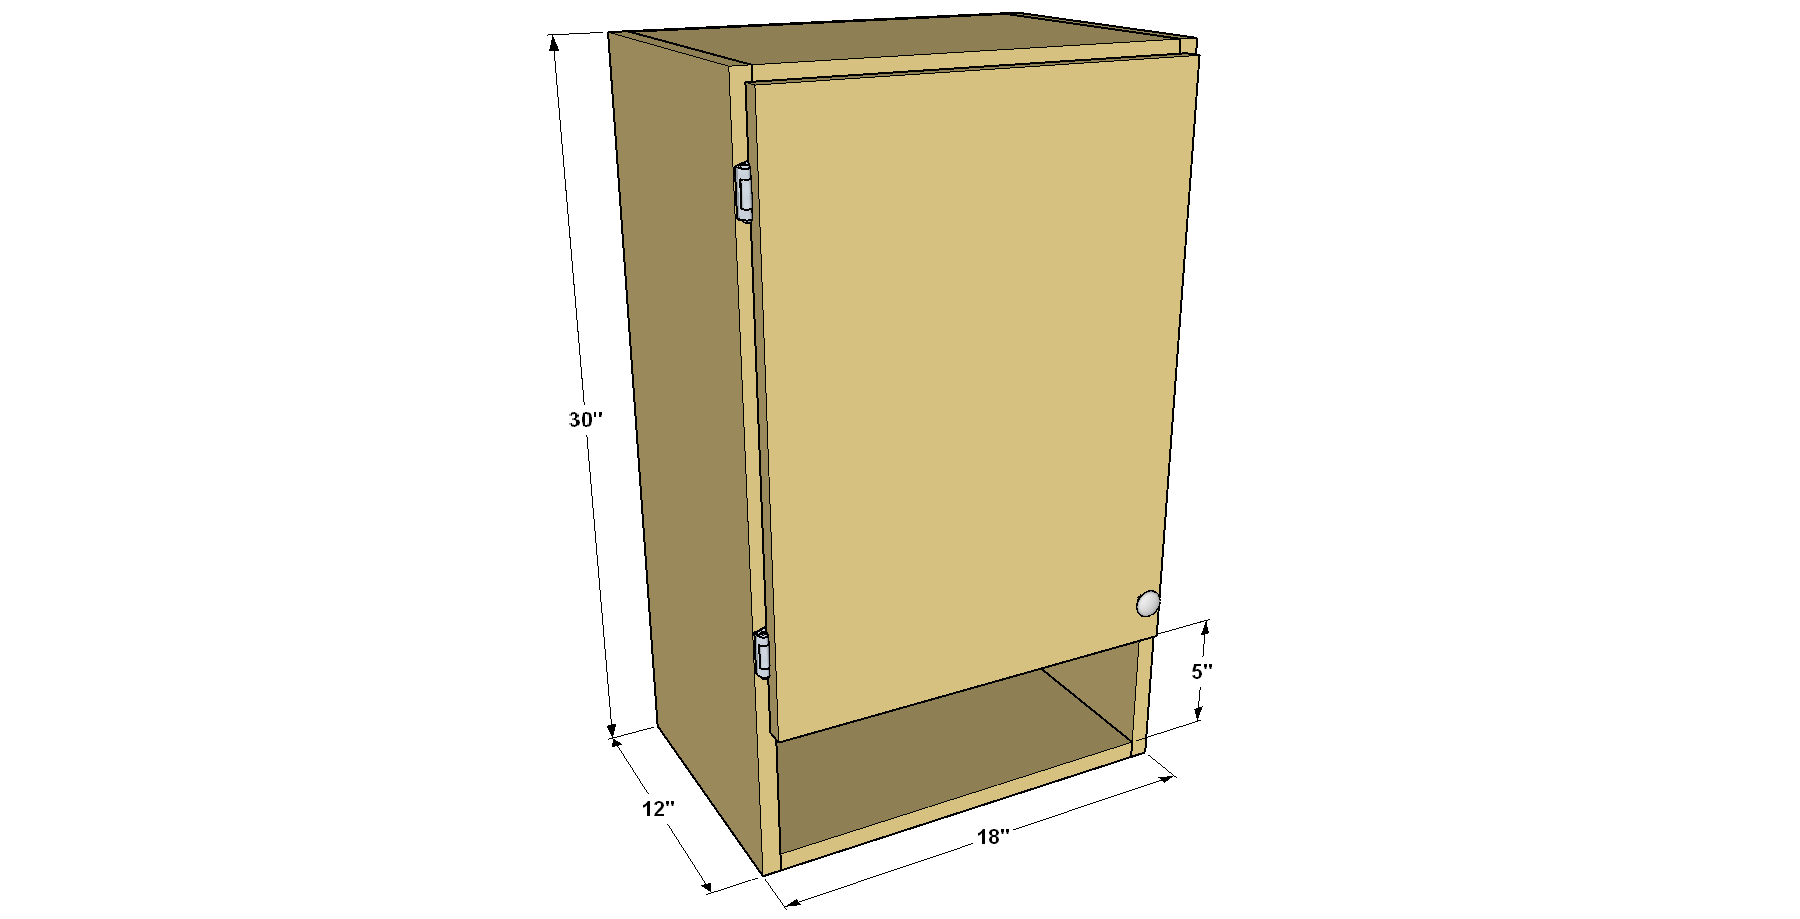 workshop-wall-cabinet-overall-with-dimensions